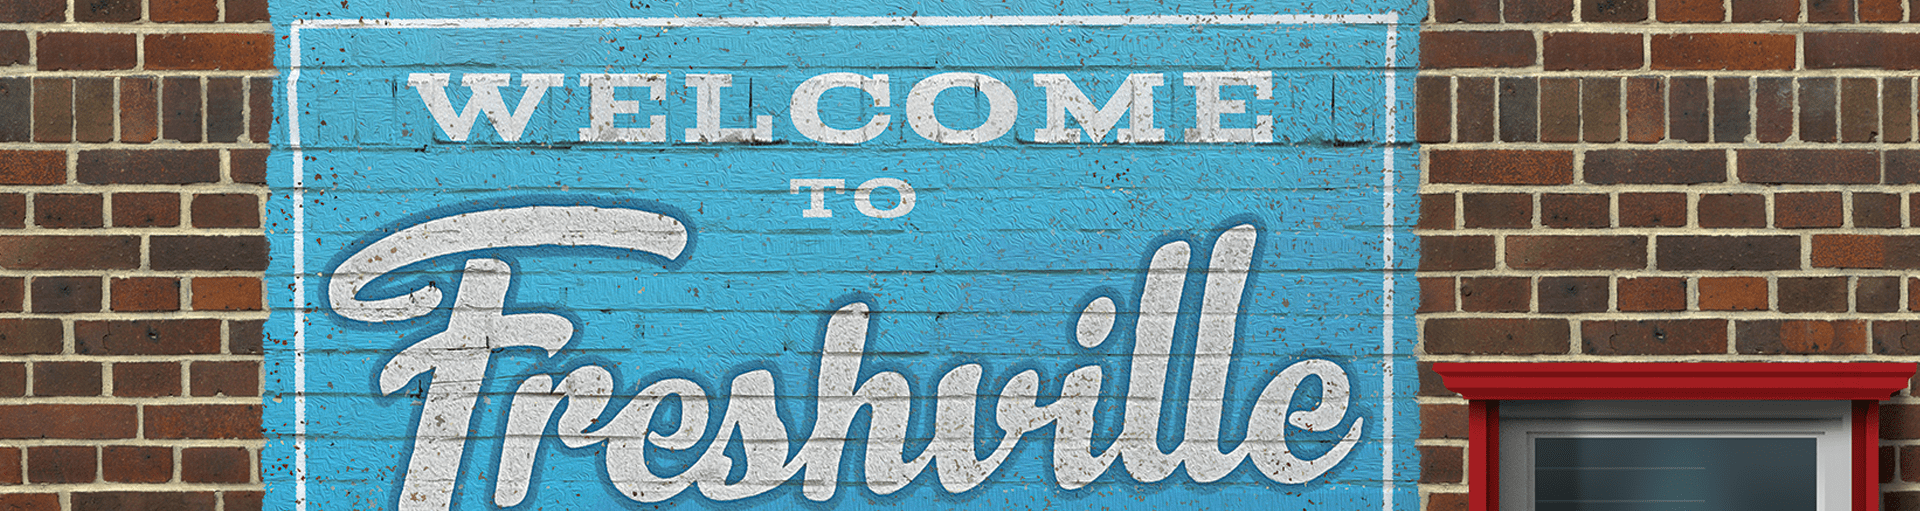 Welcome to Freshville, Fresh-Lock's PACK EXPO 2018 Tradeshow Booth